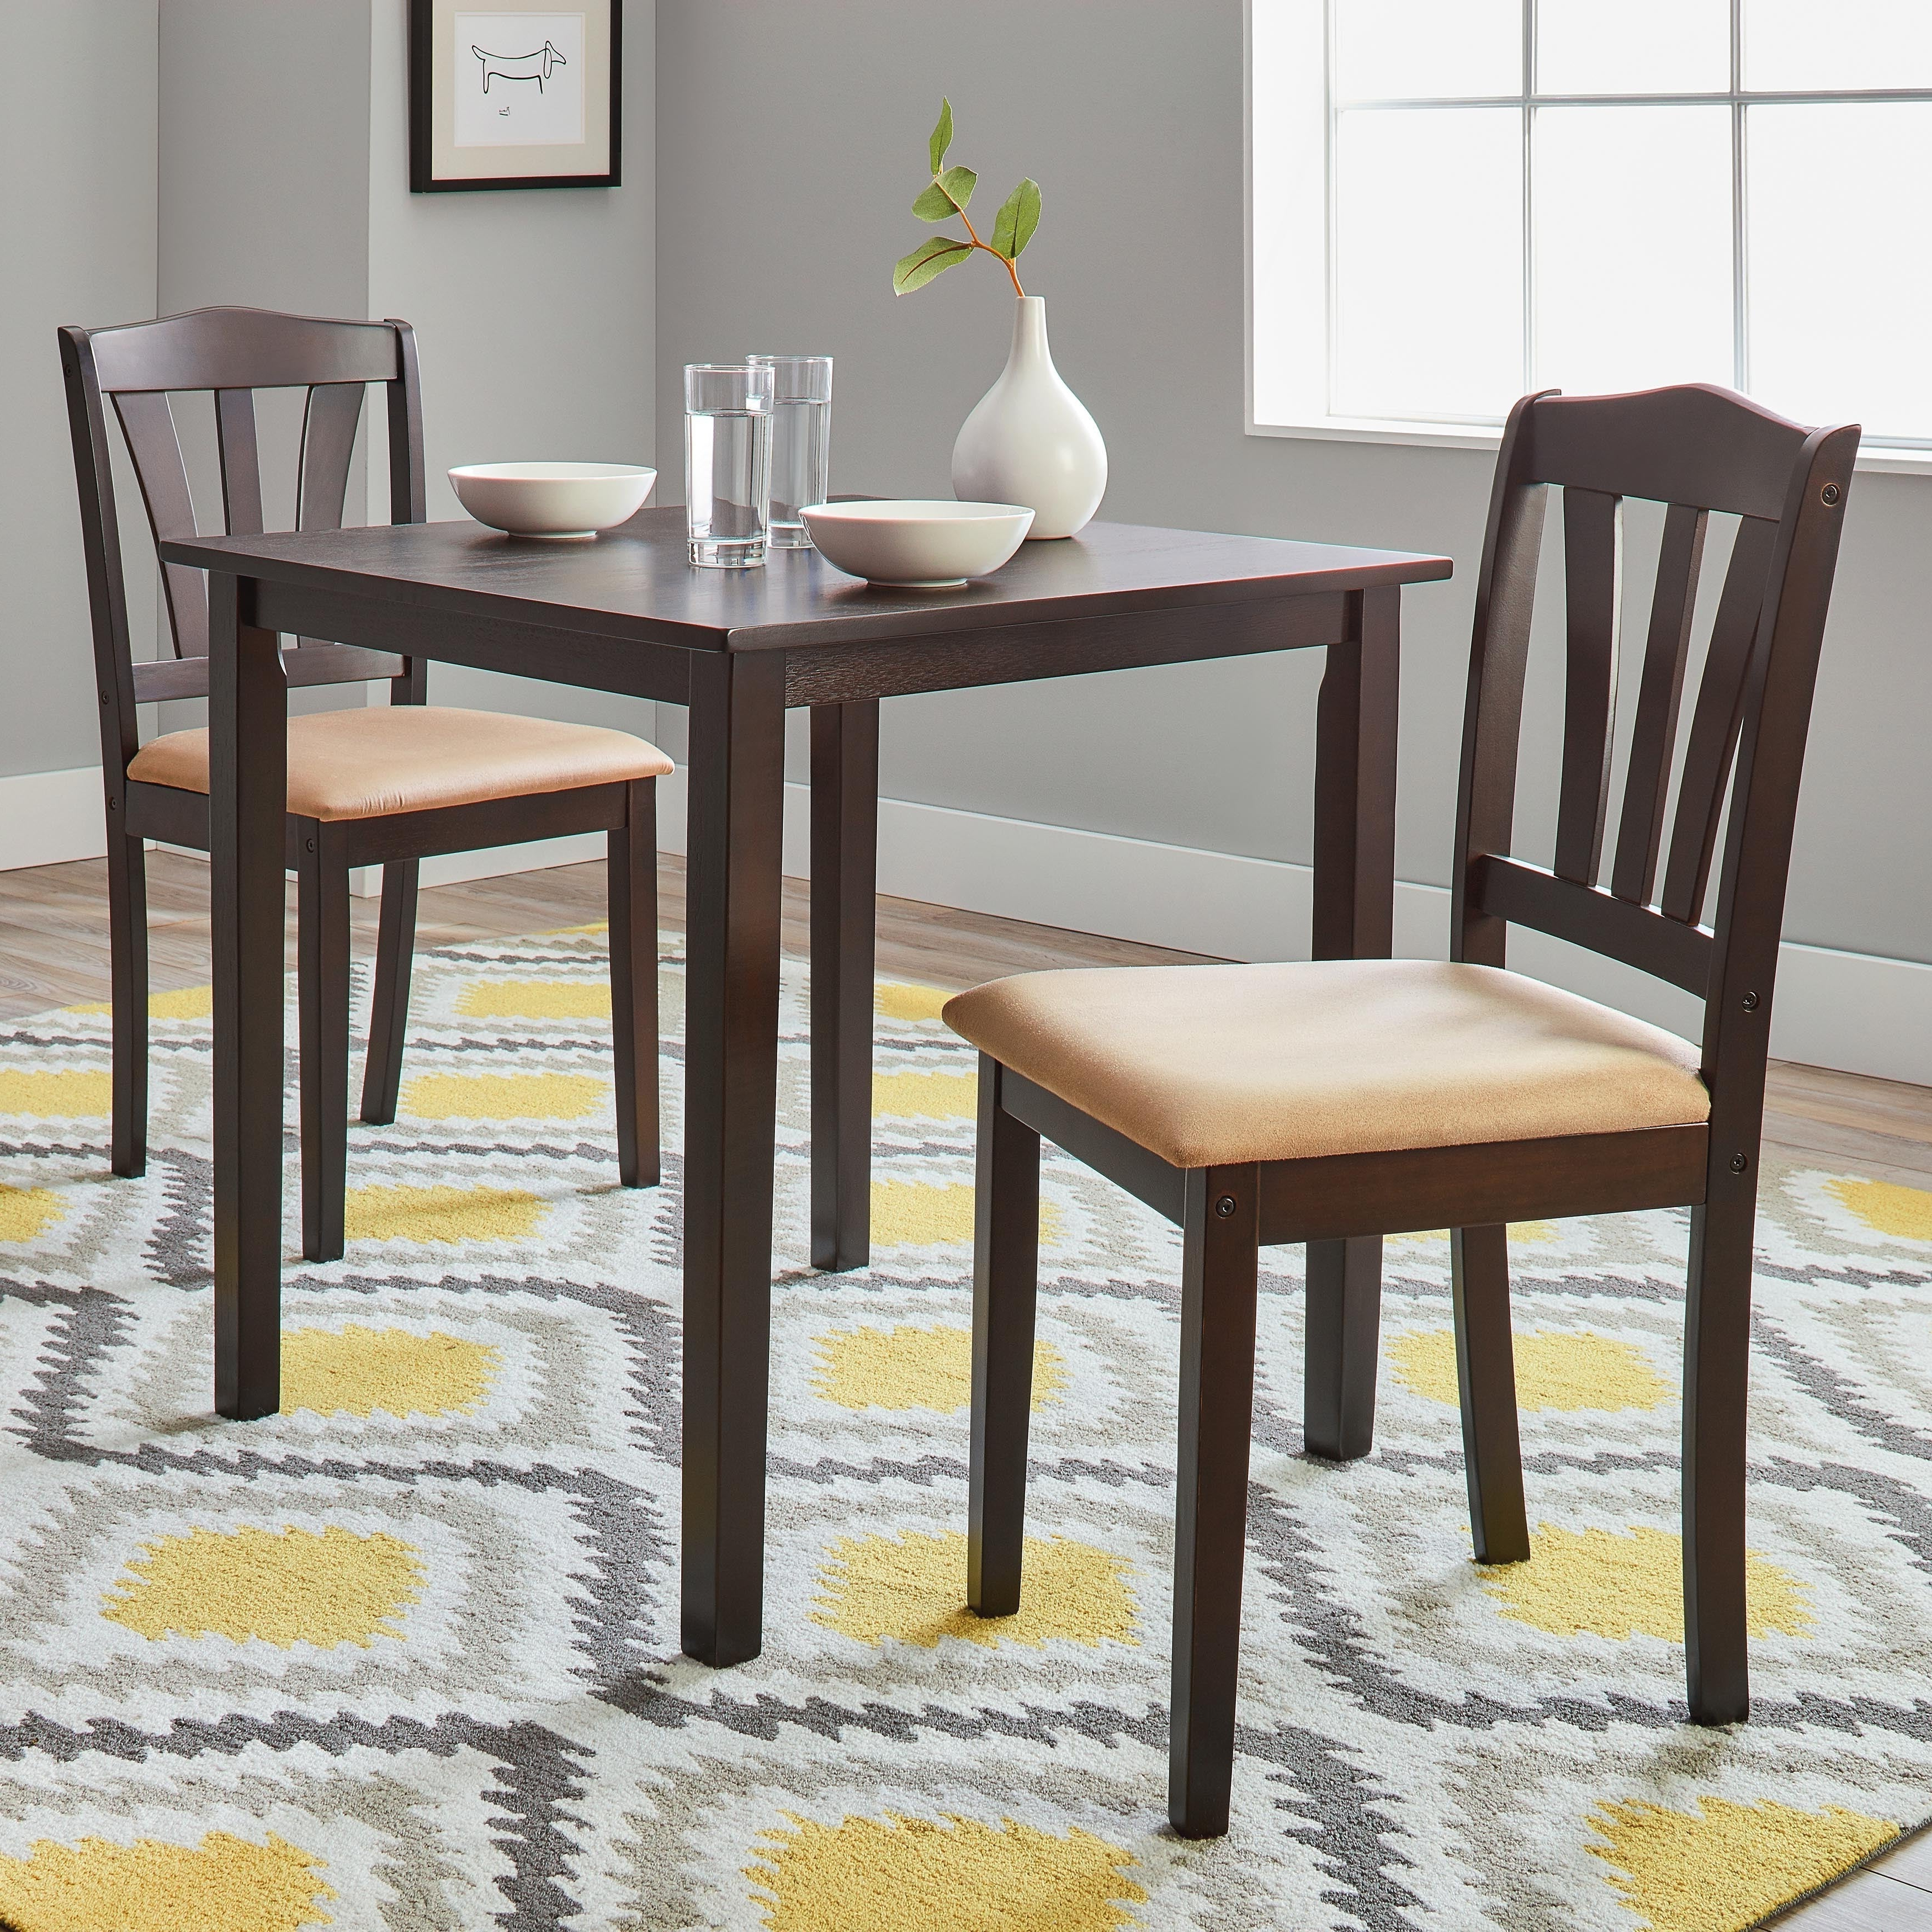 3 Piece Dining Sets Throughout Preferred Porch & Den Michigan 3 Piece Dining Set (View 4 of 20)